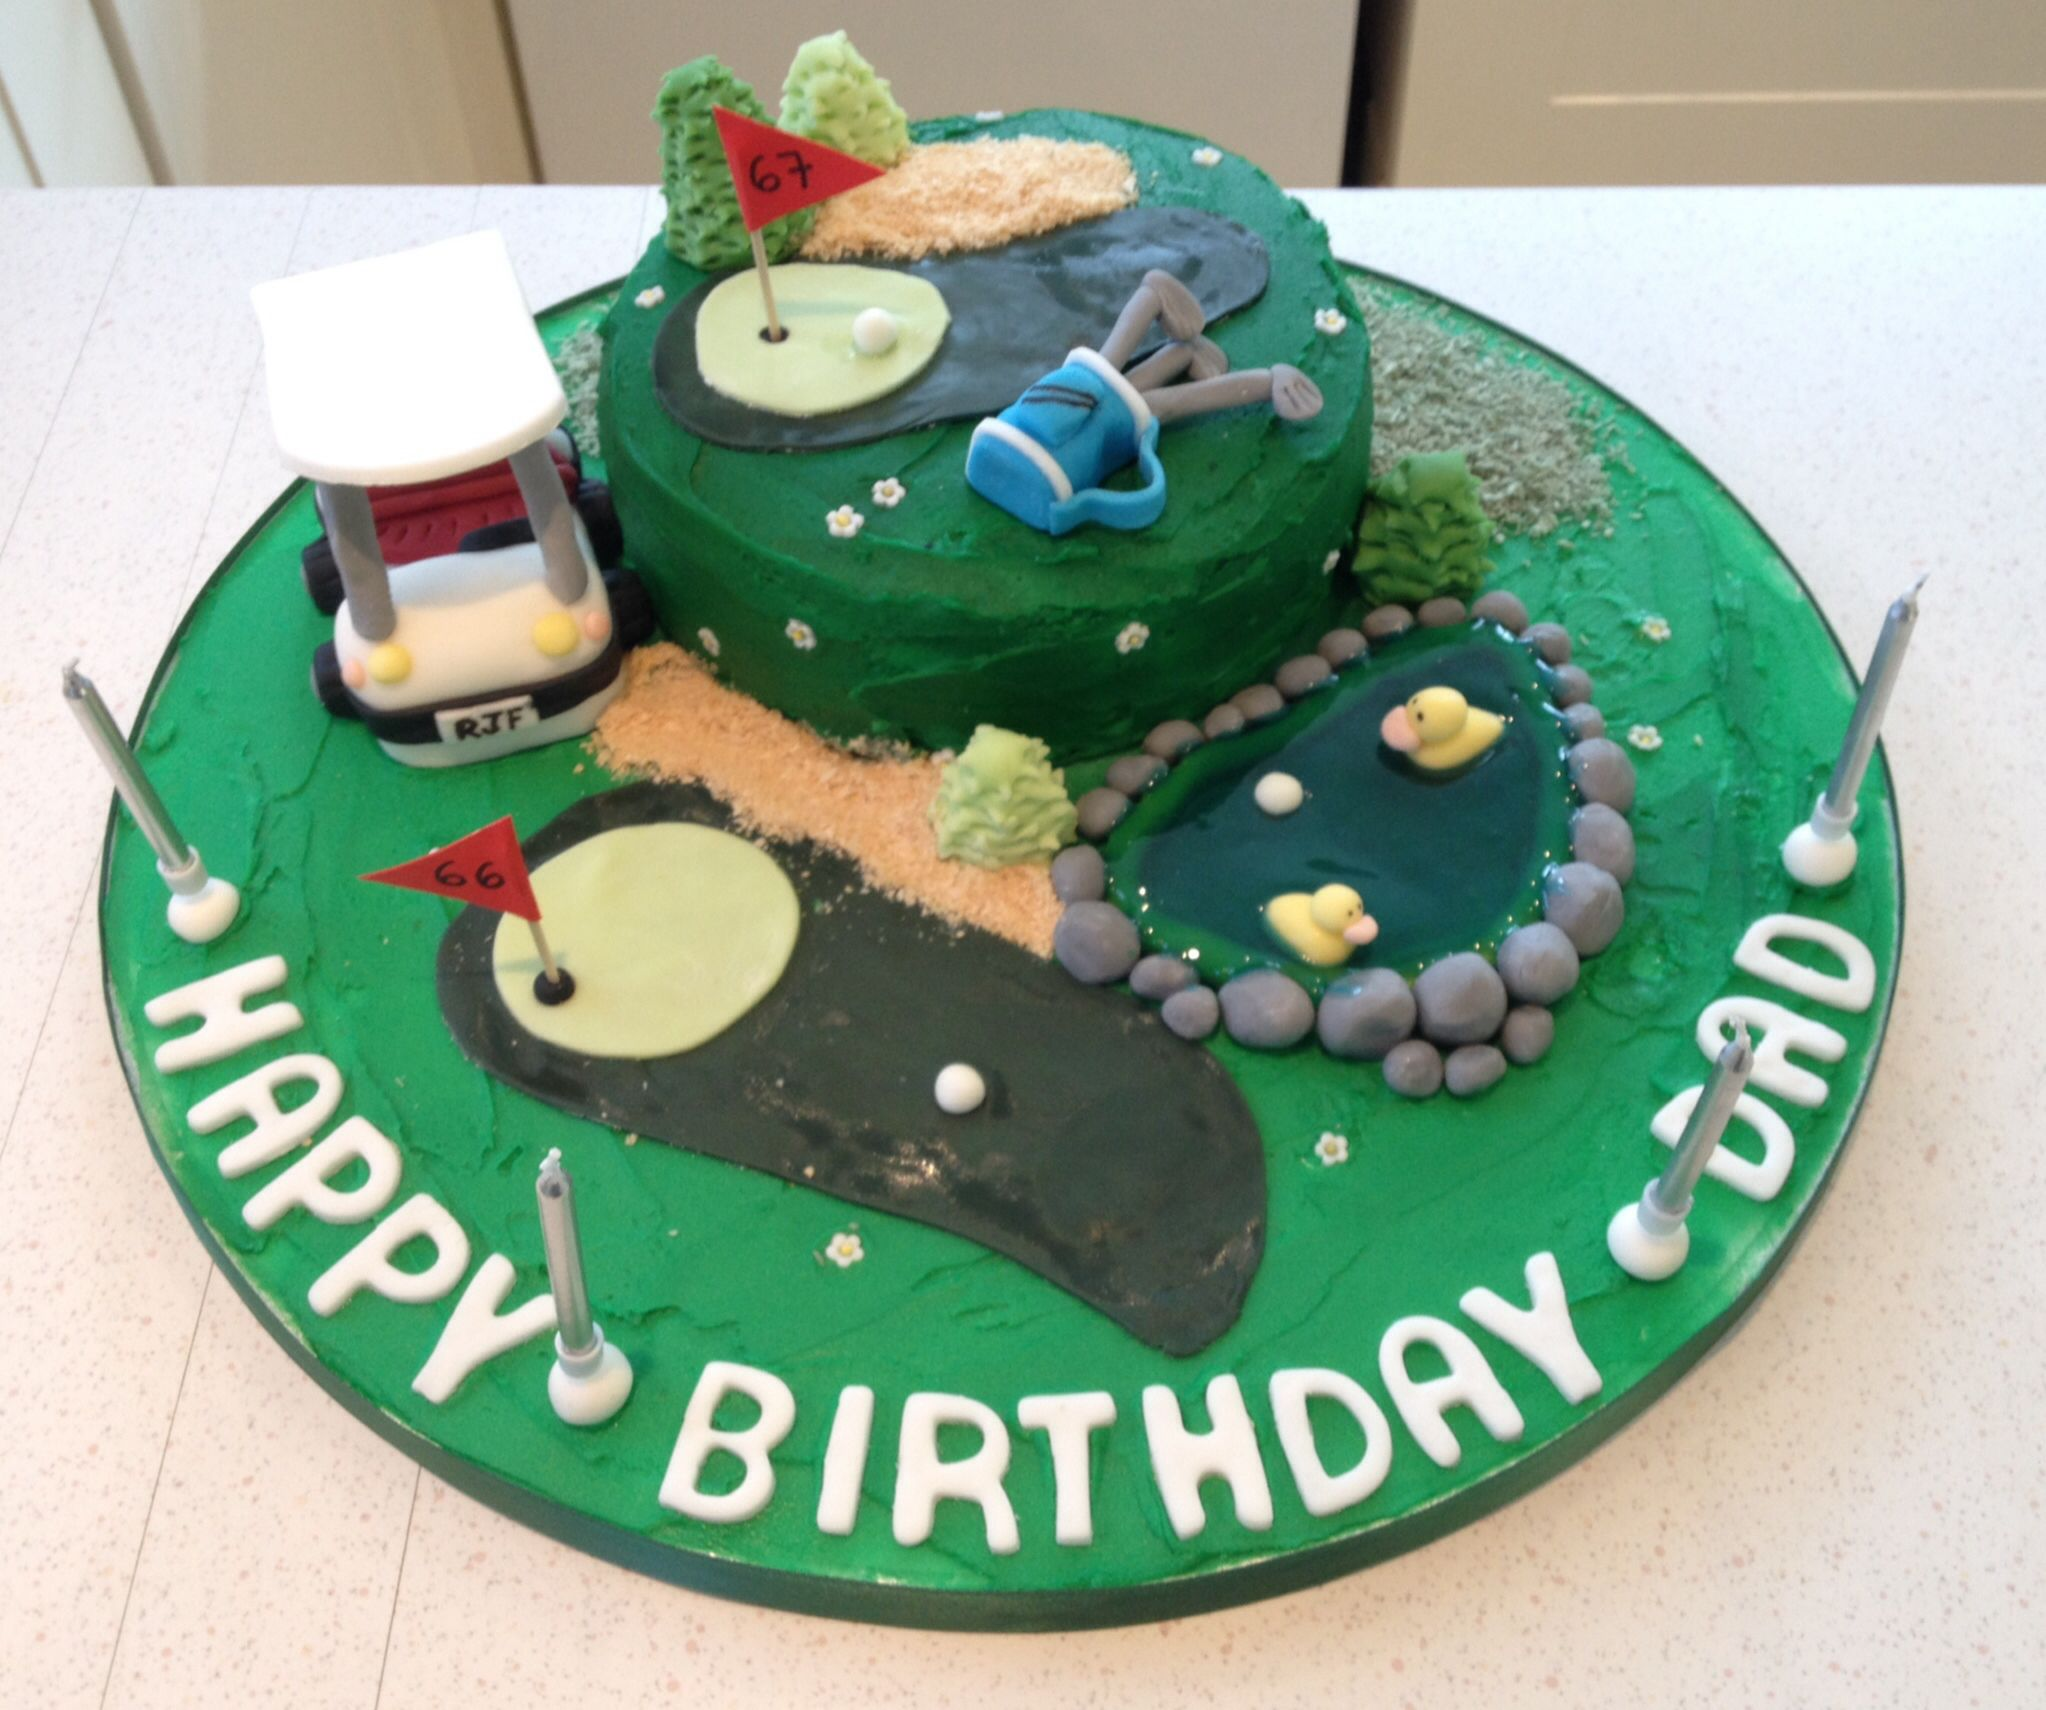 Golf cake for my dad's birthday. Fondant golf buggy & golf bag. Duck pond made with piping get and fondant rocks & ducks. Sand bunker made ice cream cones.